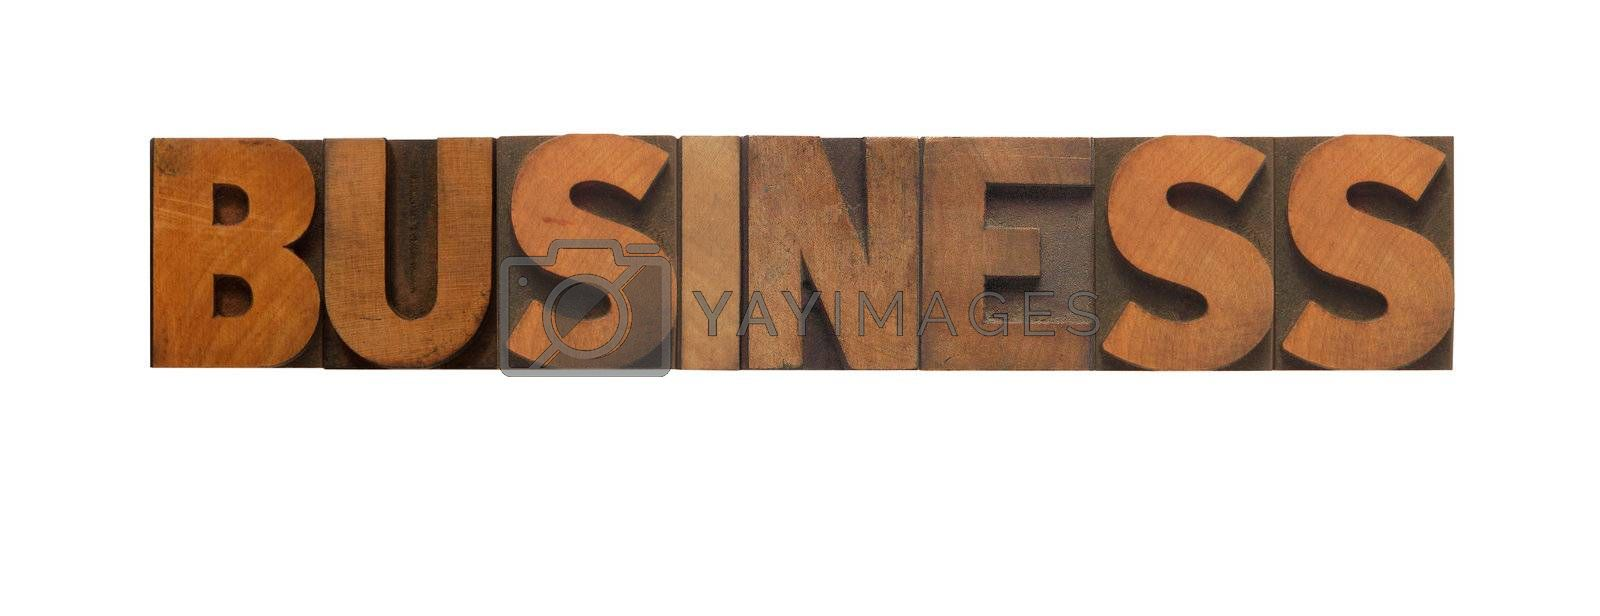 the word business in old wood type